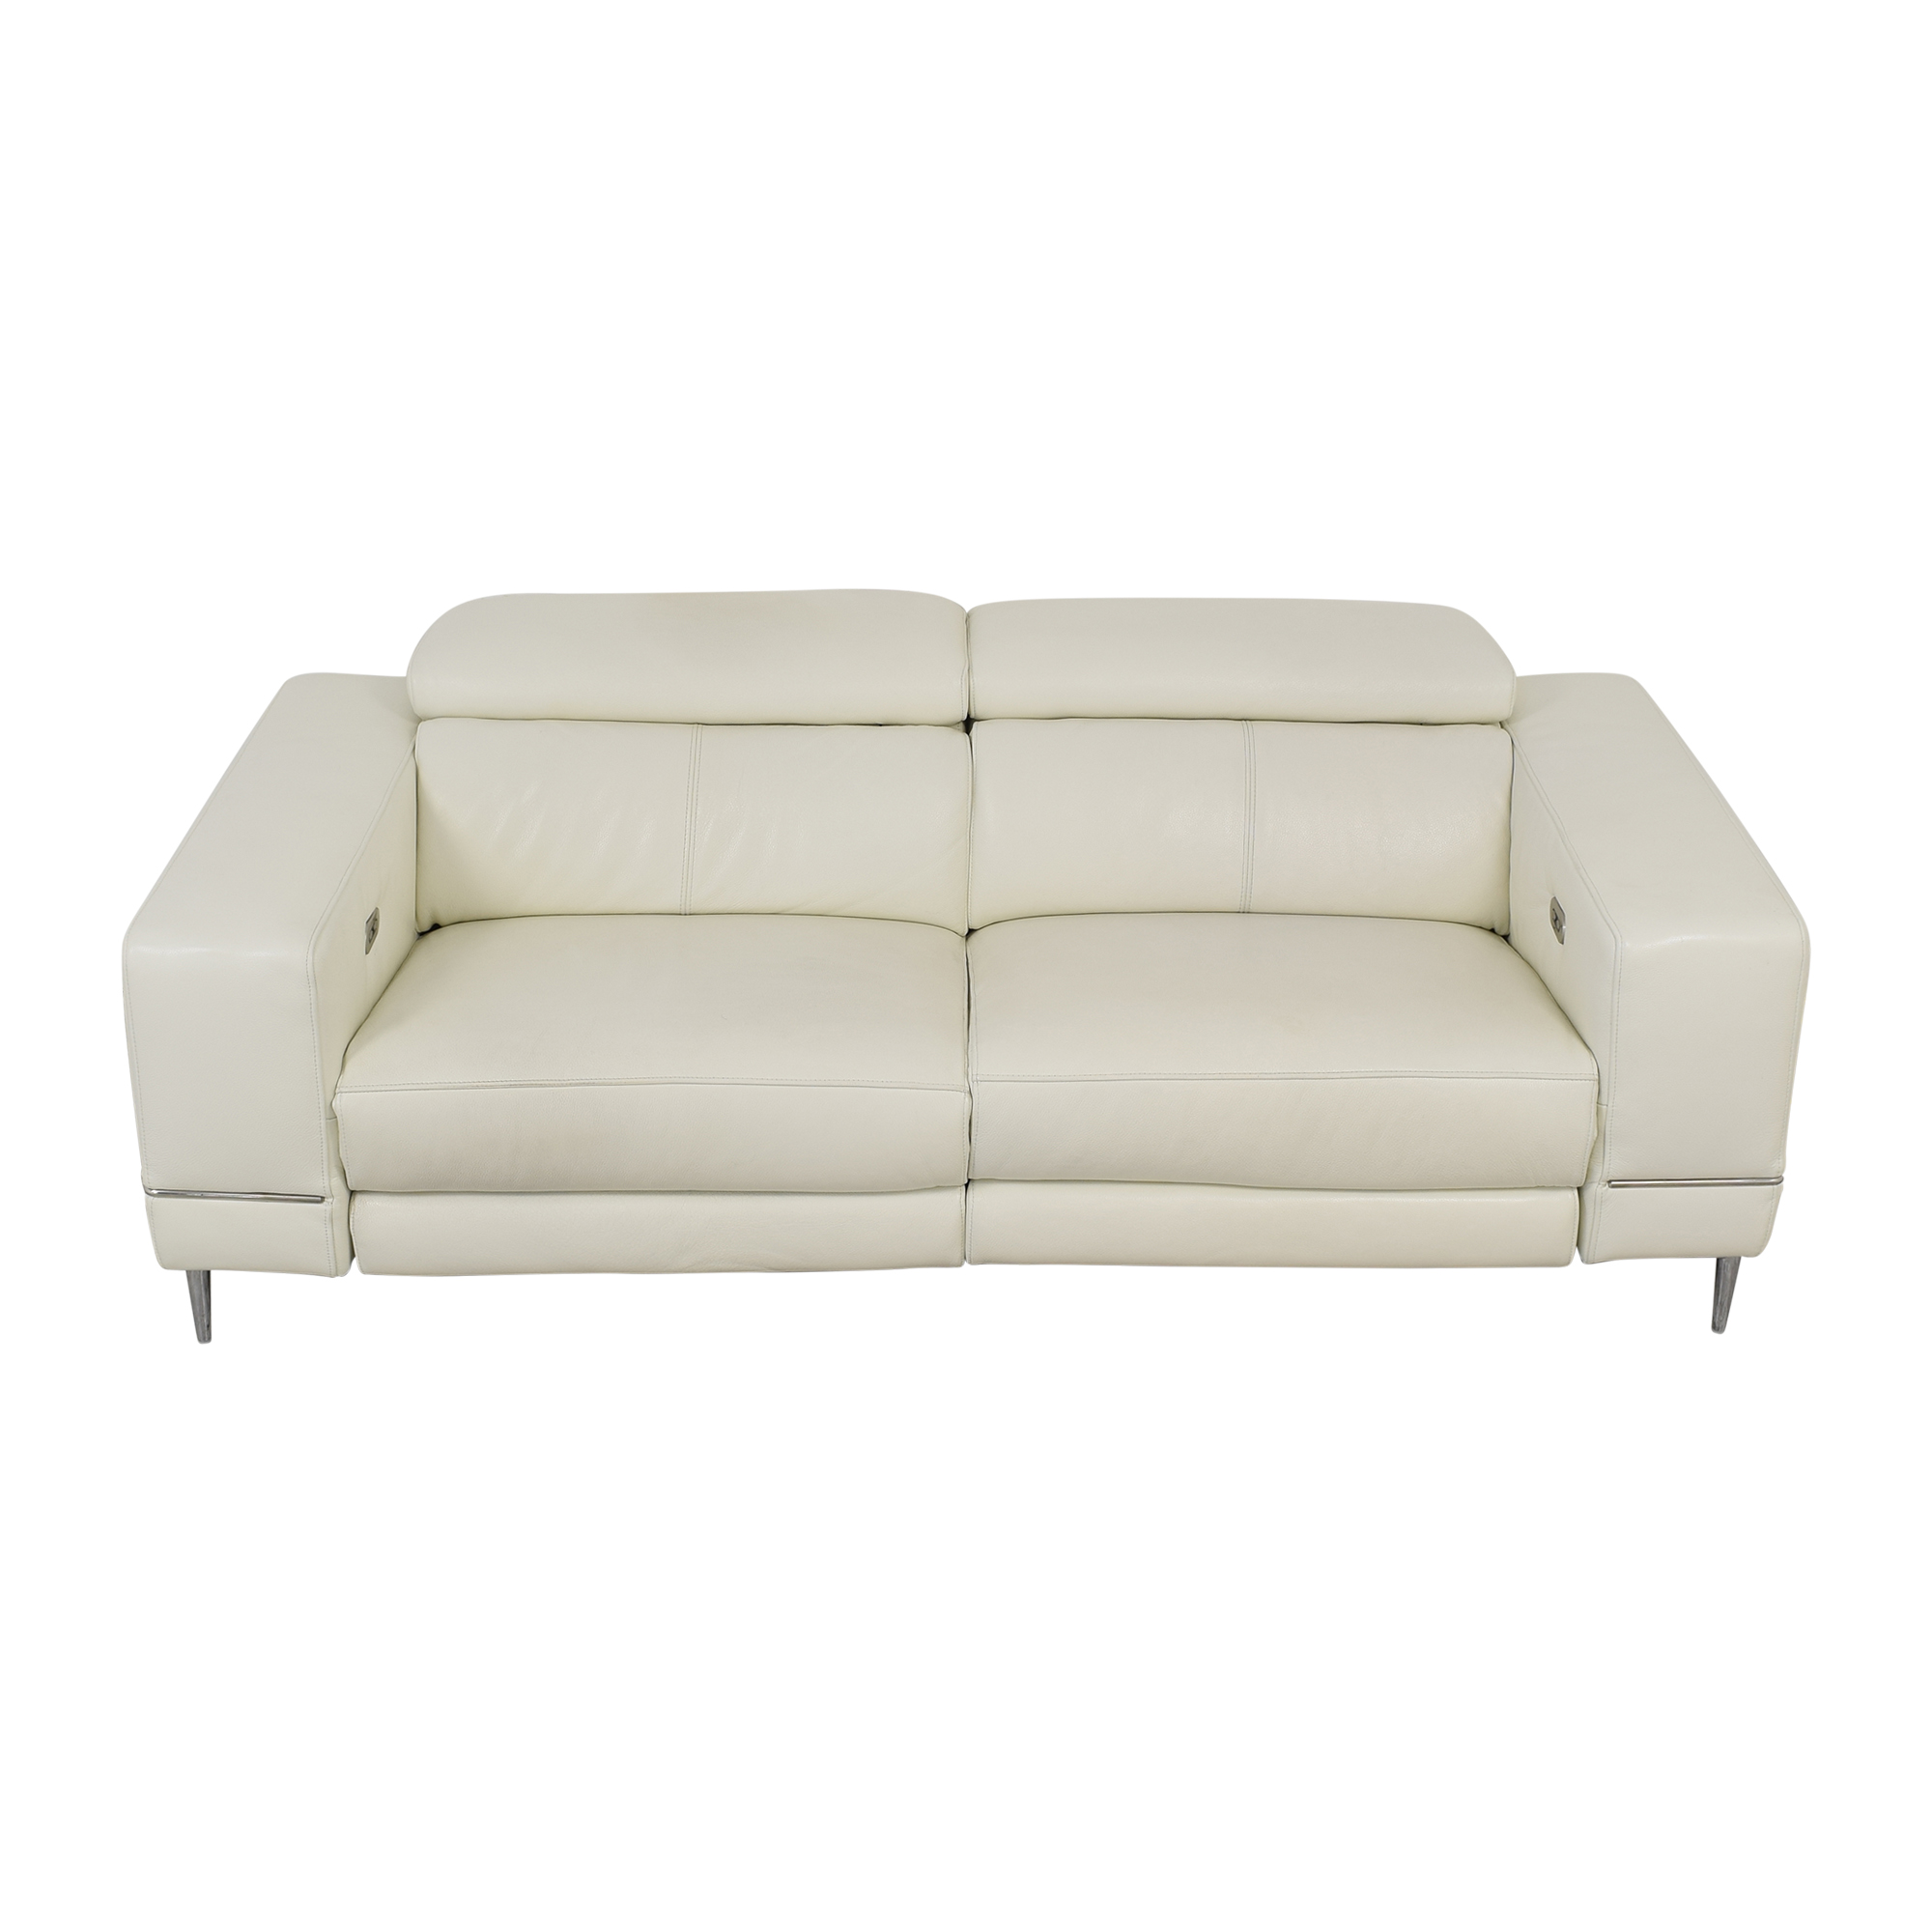 Modani Modani Bergamo Motion Sofa White coupon